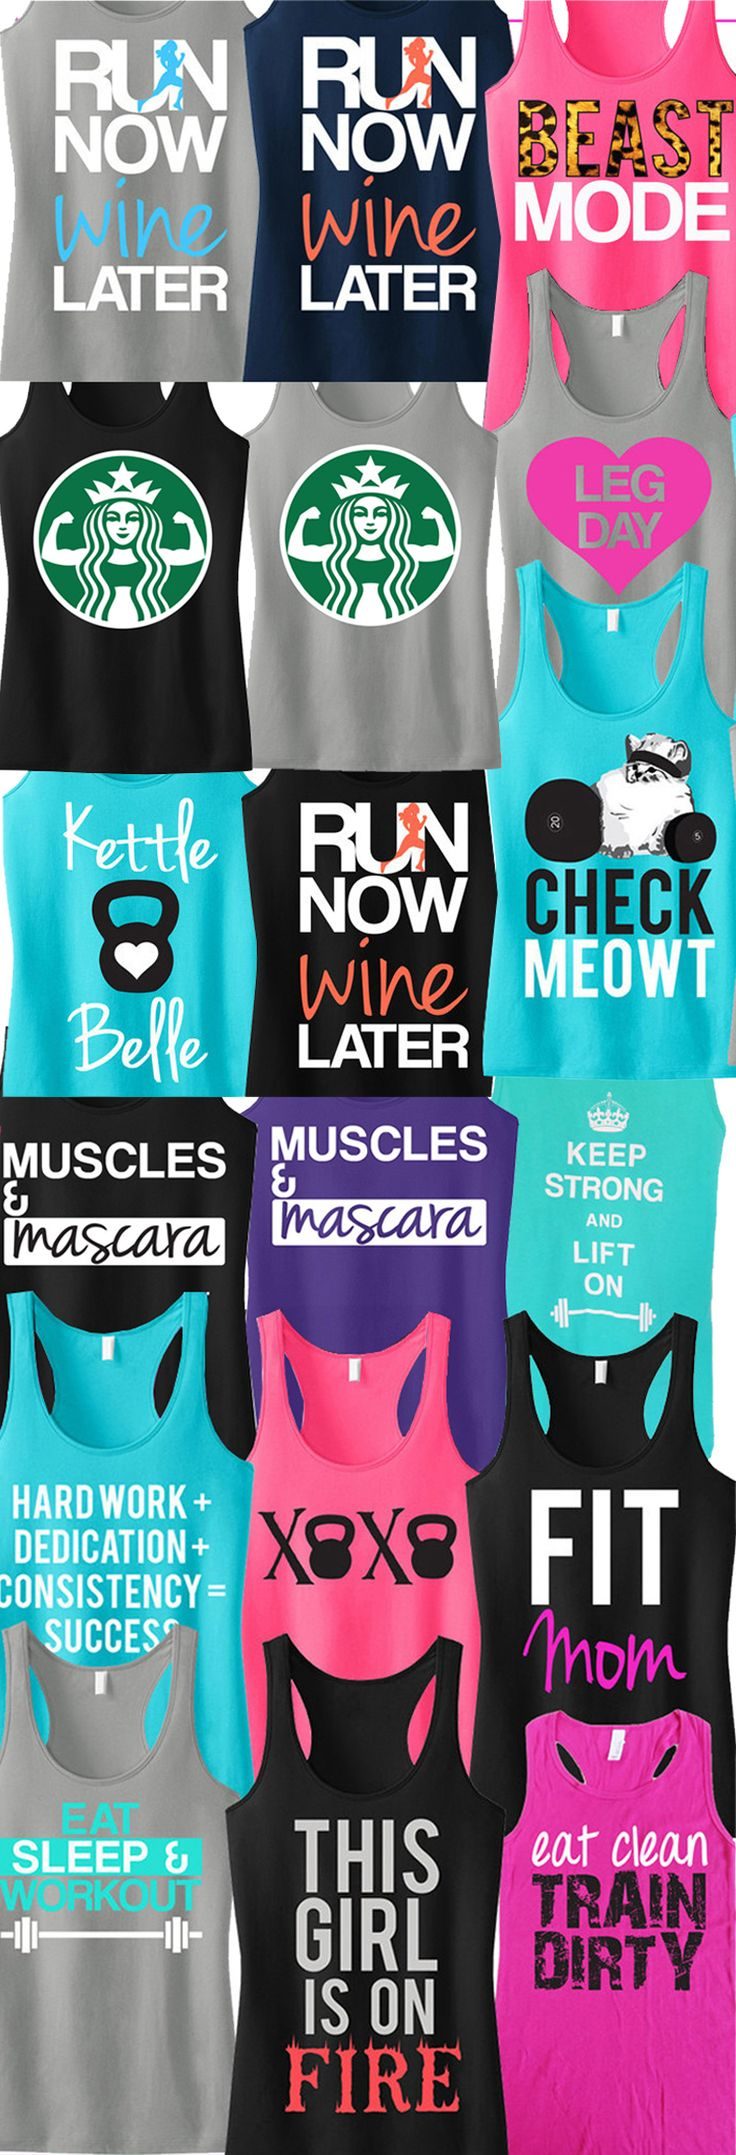 Totally ordered the Starbucks muscle shirts............................................................Pick any 3 tanks for only $63.95. NoBullWomanApparel on Etsy.